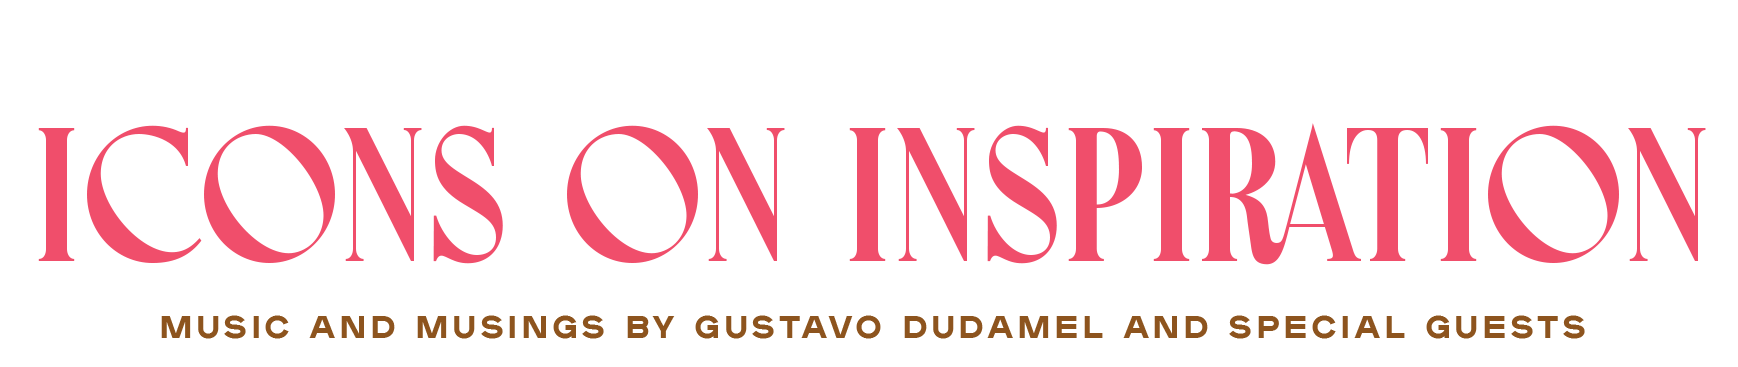 Watch Icons on Inspiration now: music and musings from Gustavo Dudamel and special guests